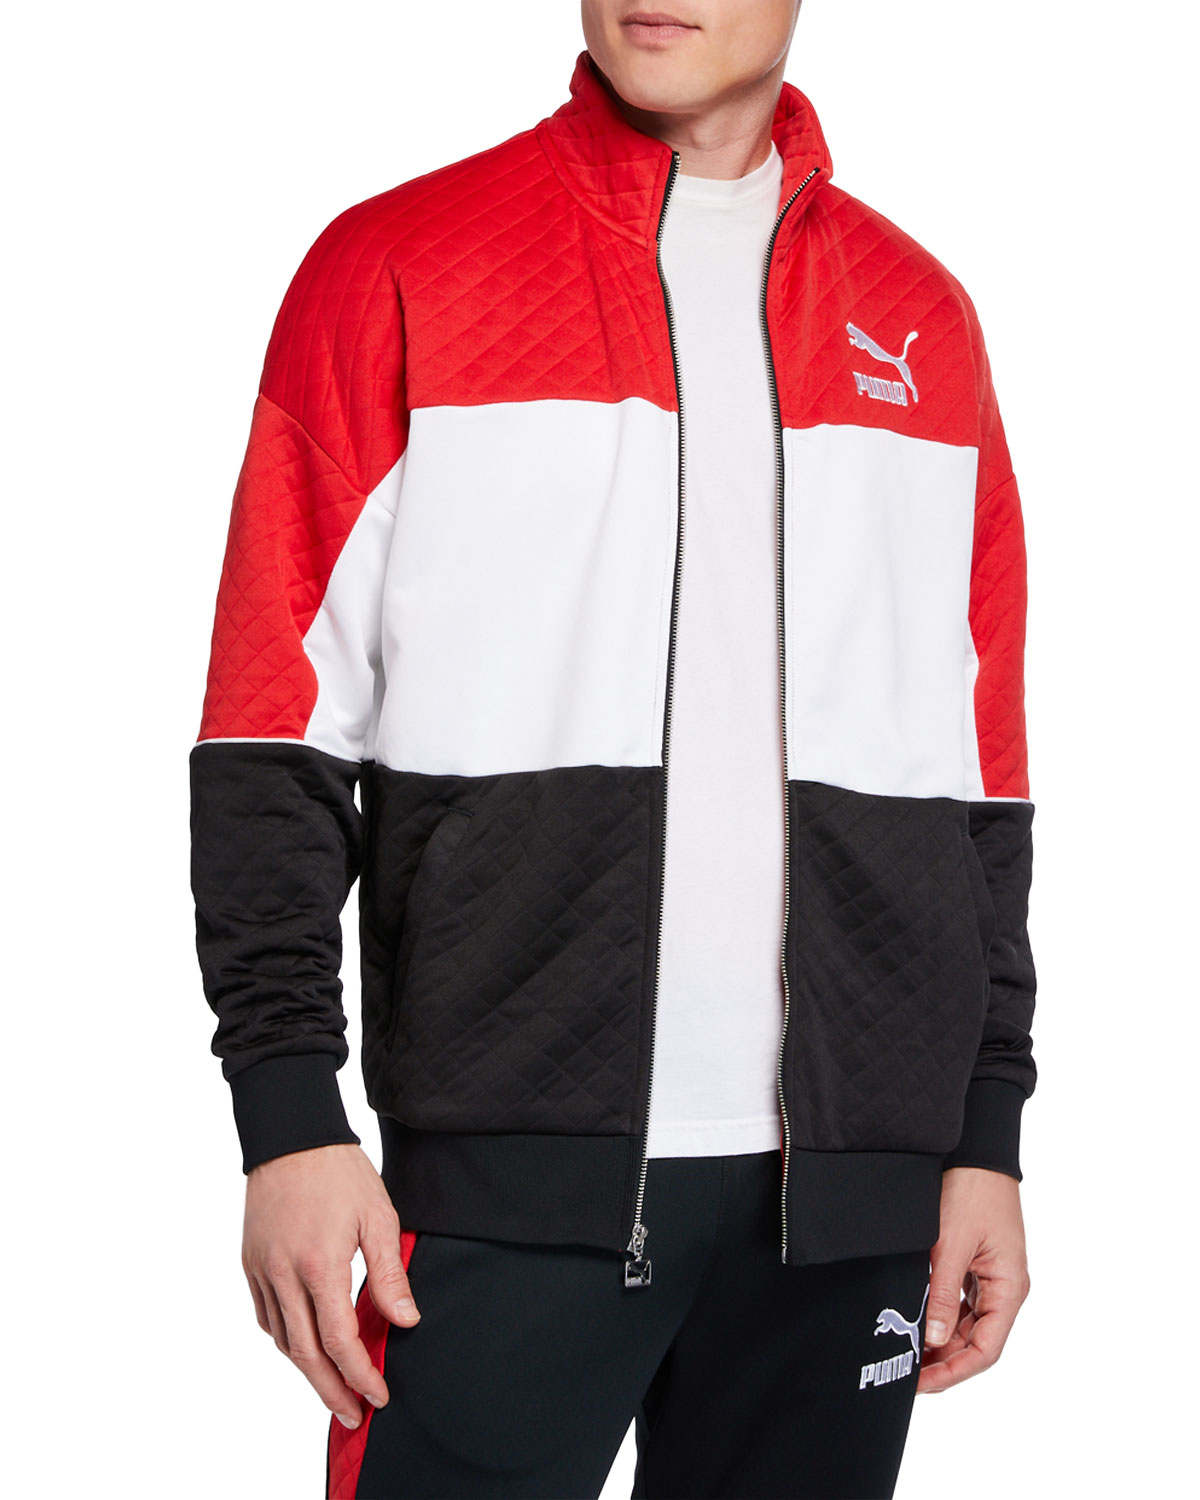 8d38ea829fc4 Puma Men s Retro Tricolor Quilted Jacket